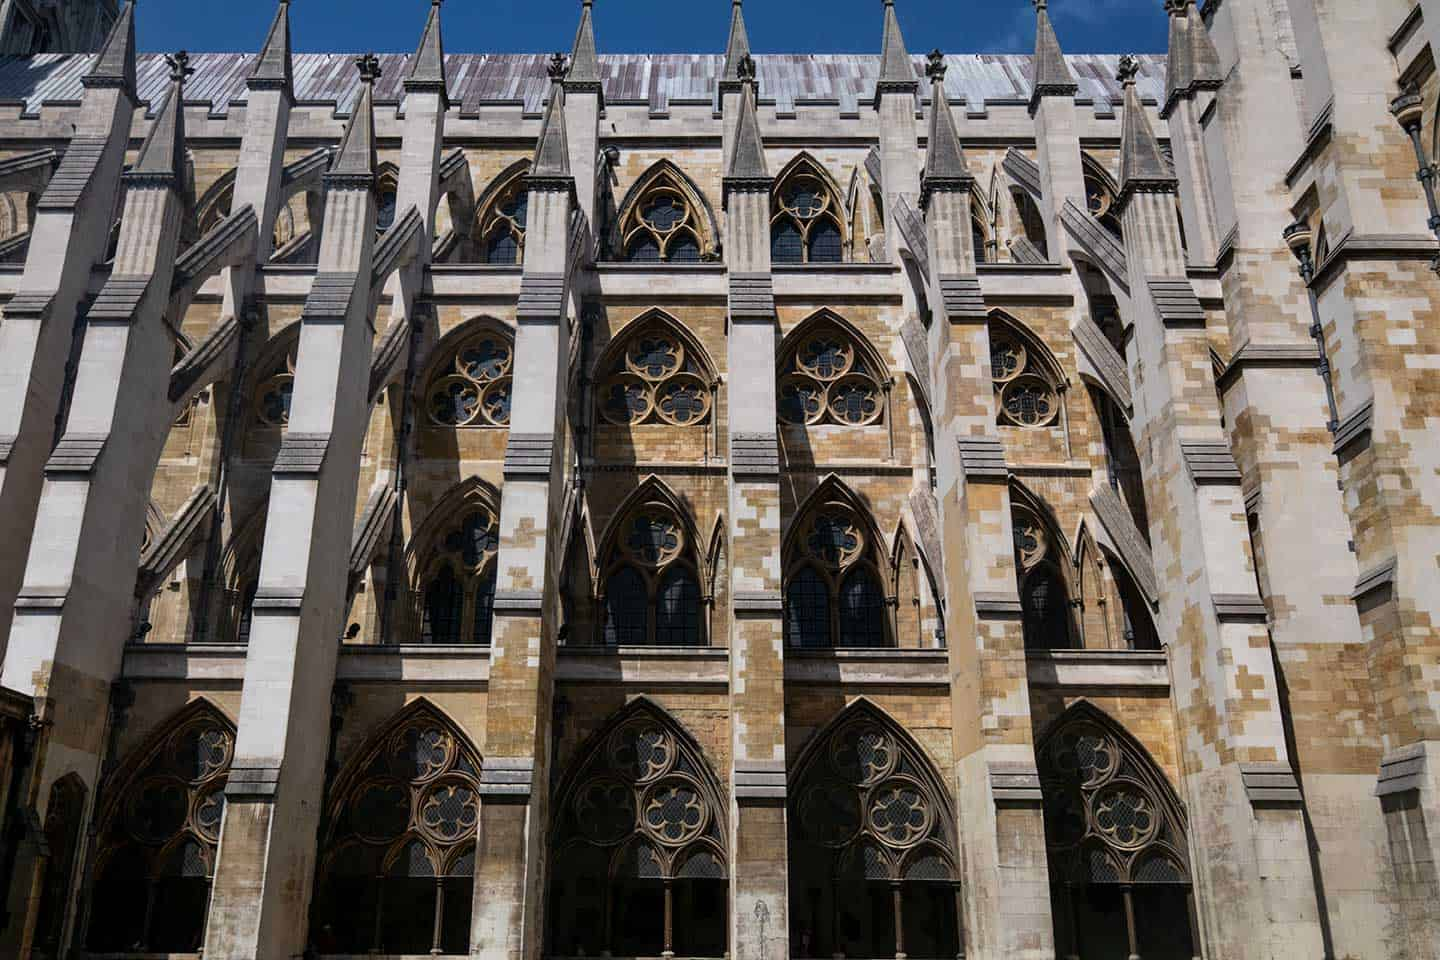 Image of the south side of Westminster Abbey, seen from the Cloister